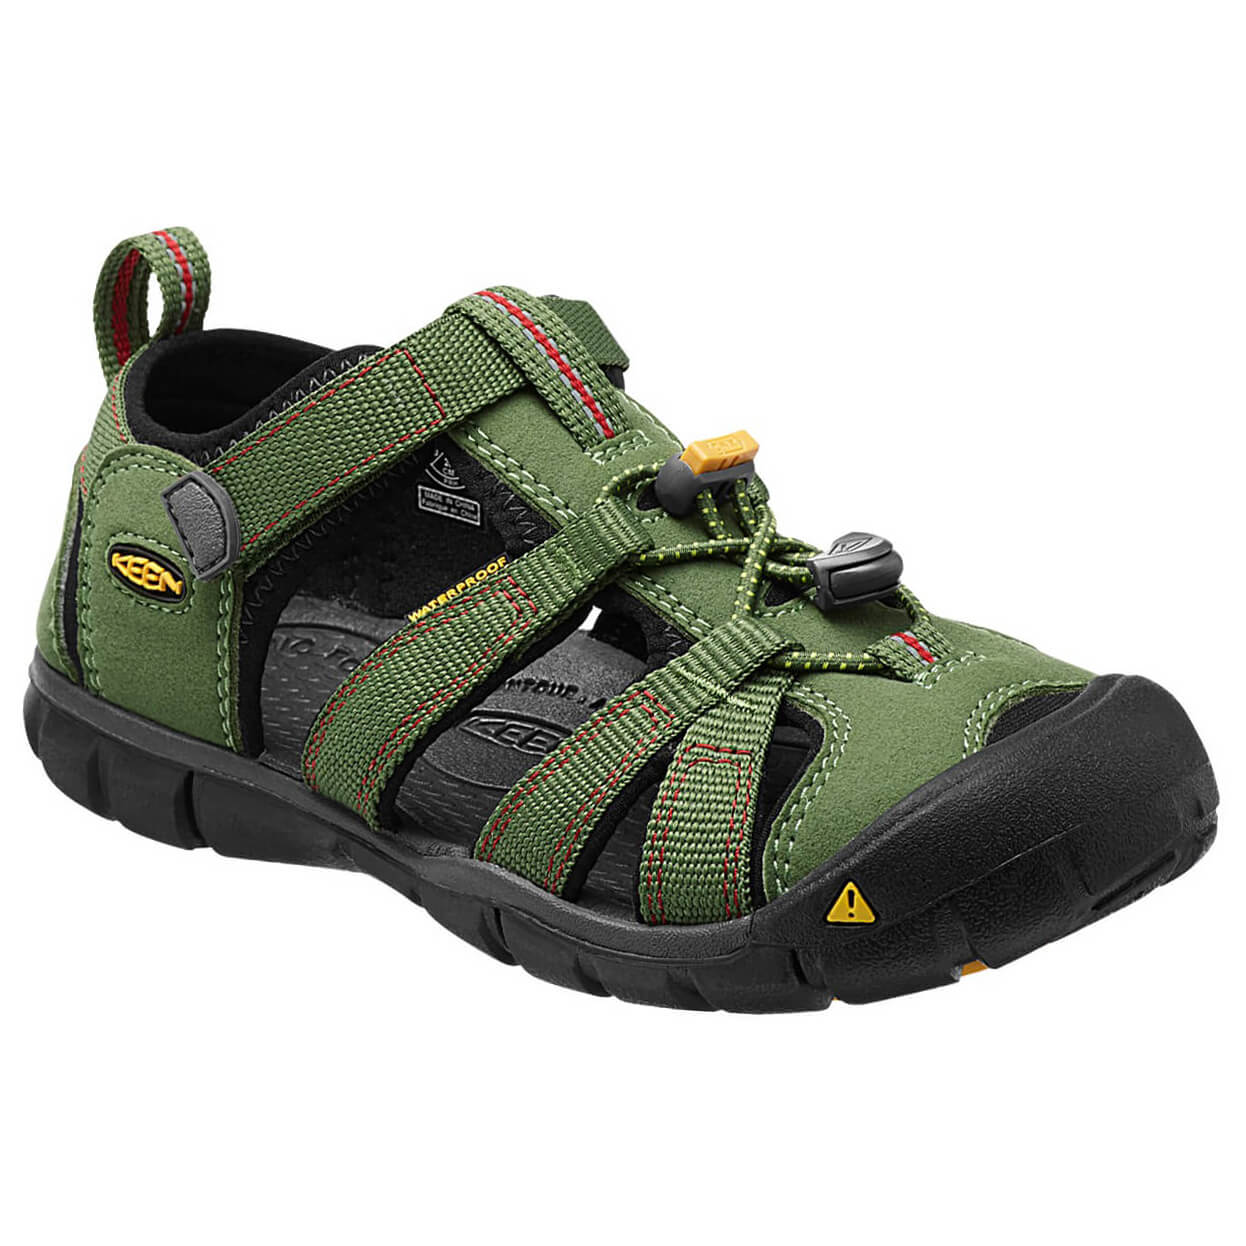 There's a new kid on the trail, KEEN, who made a lot of friends by offering quality outdoor shoes, hiking boots, sandals, and more. Men, women.